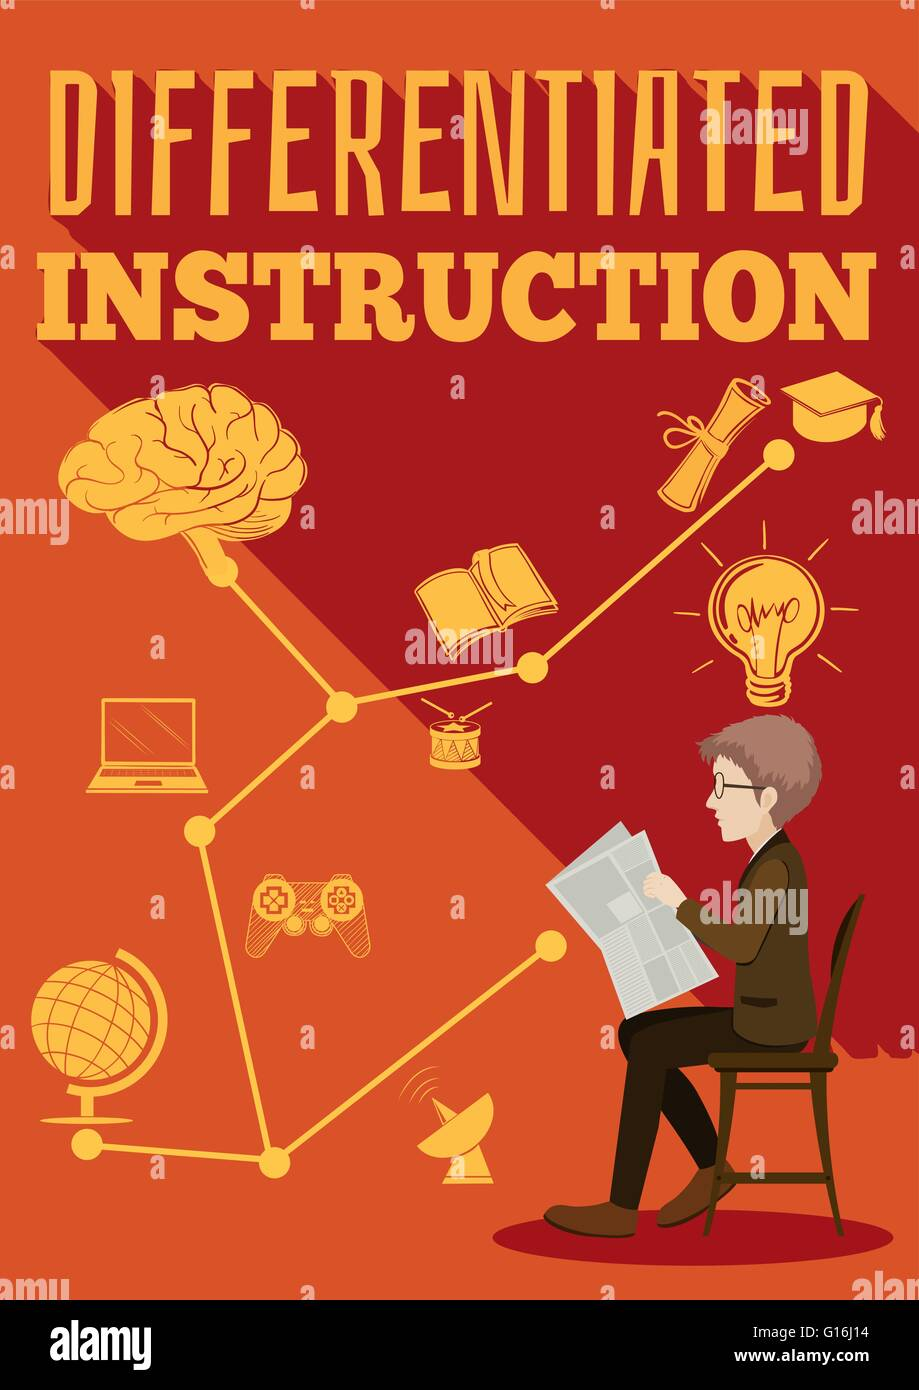 Differentiated Instruction Sign Man Illustration Stock Photos